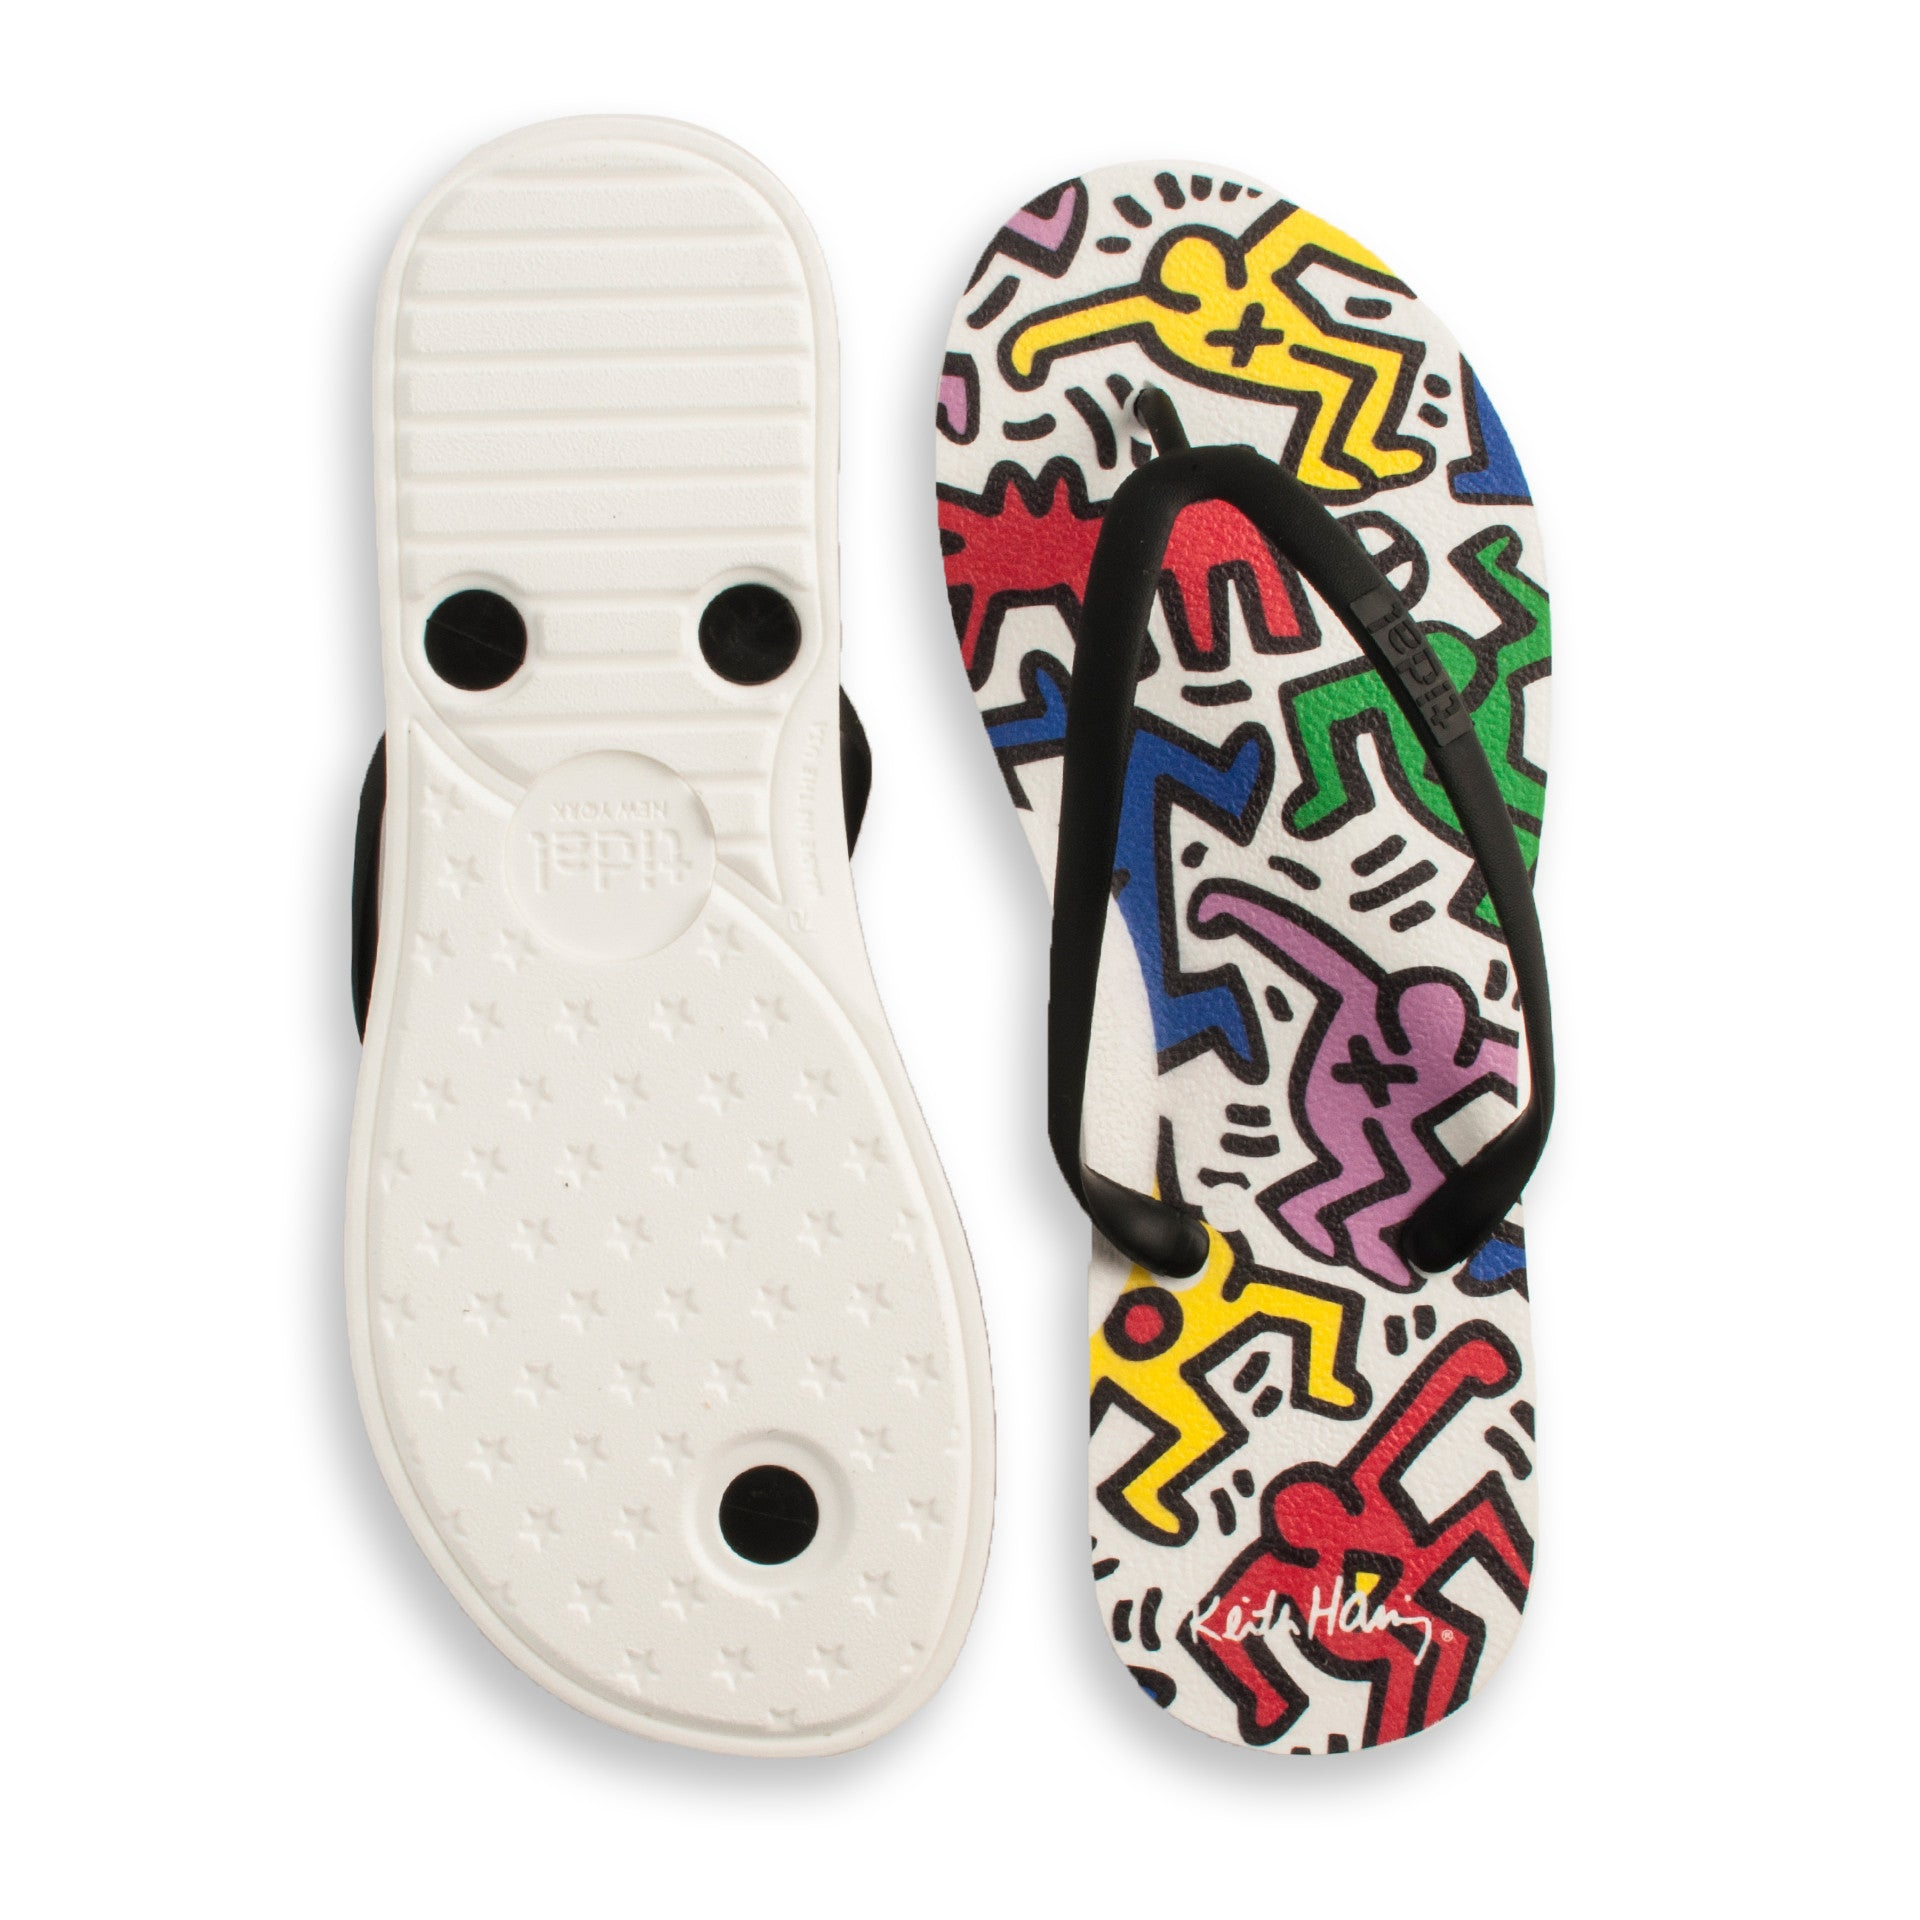 Tidal - Keith Haring Dancers Women's Flip Flops, White/Black - The Giant Peach - 2